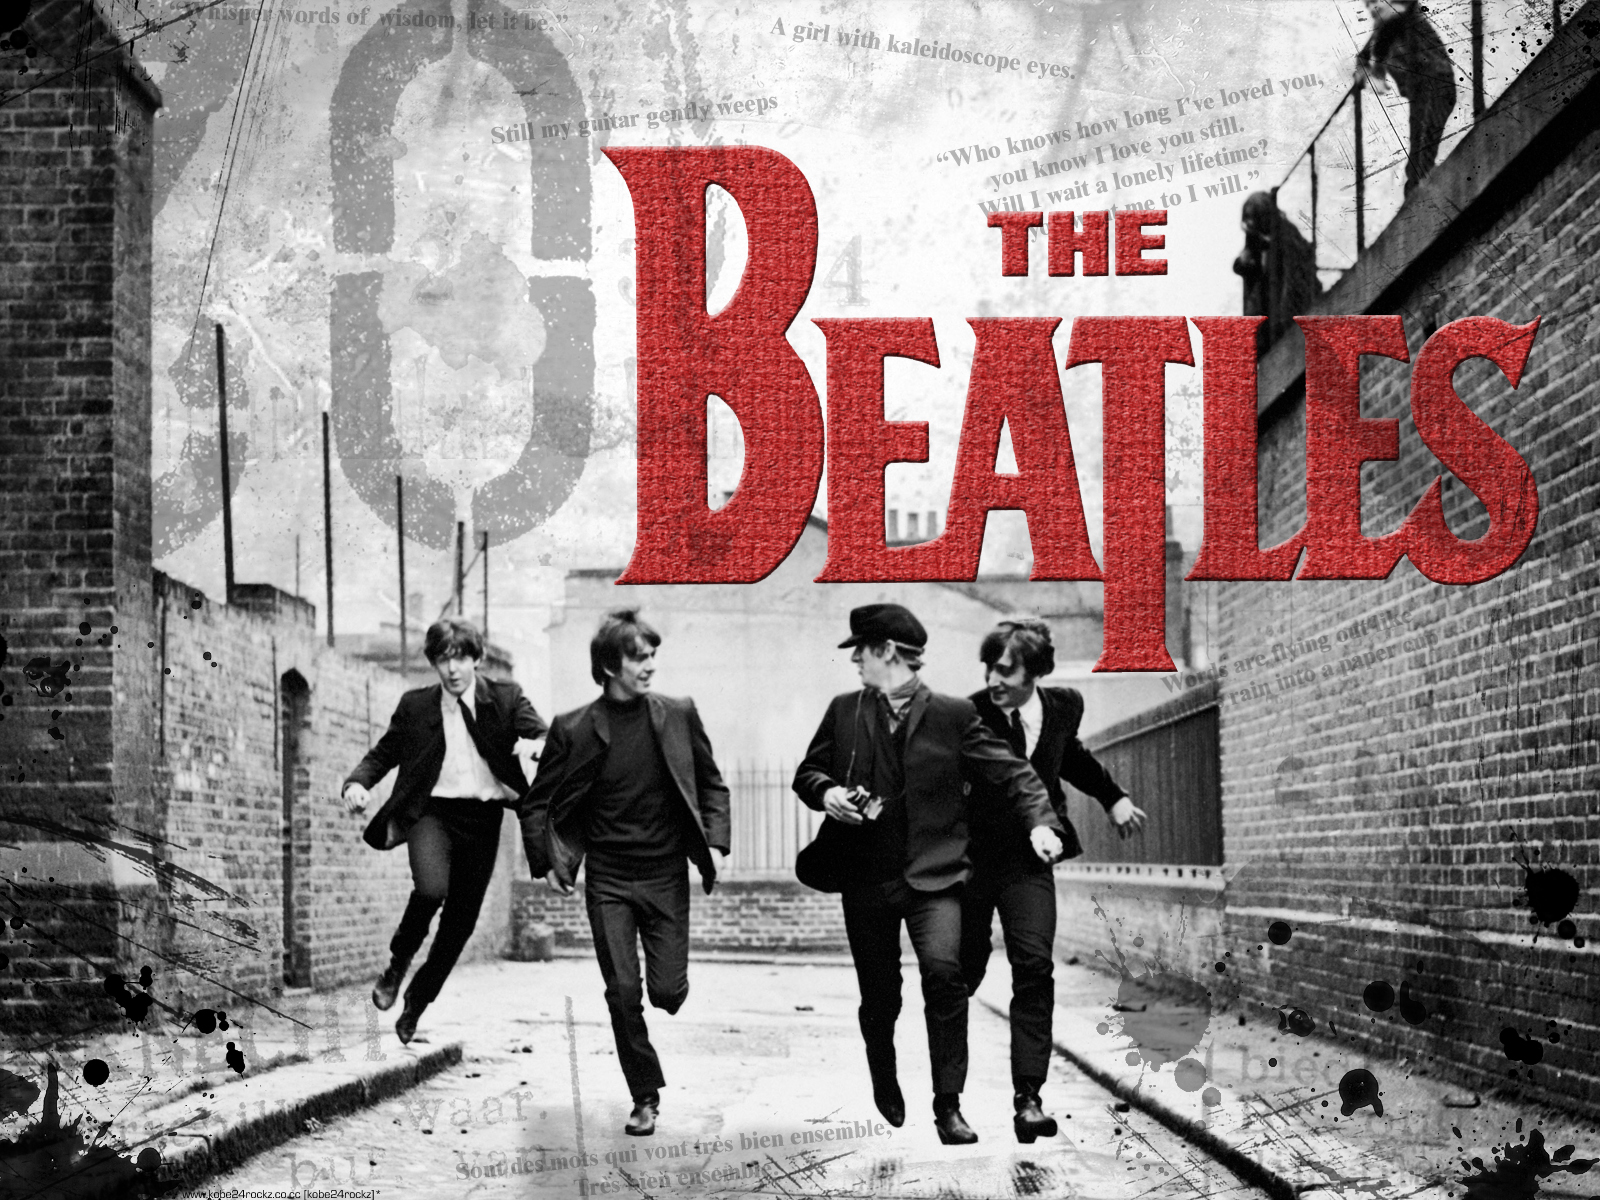 http://2.bp.blogspot.com/-OJL7R-WmwxM/T7chV2cgGYI/AAAAAAAAAEQ/MicCwtVUBA8/s1600/The_Beatles_Wallpaper_by_Angelmaker666.jpg